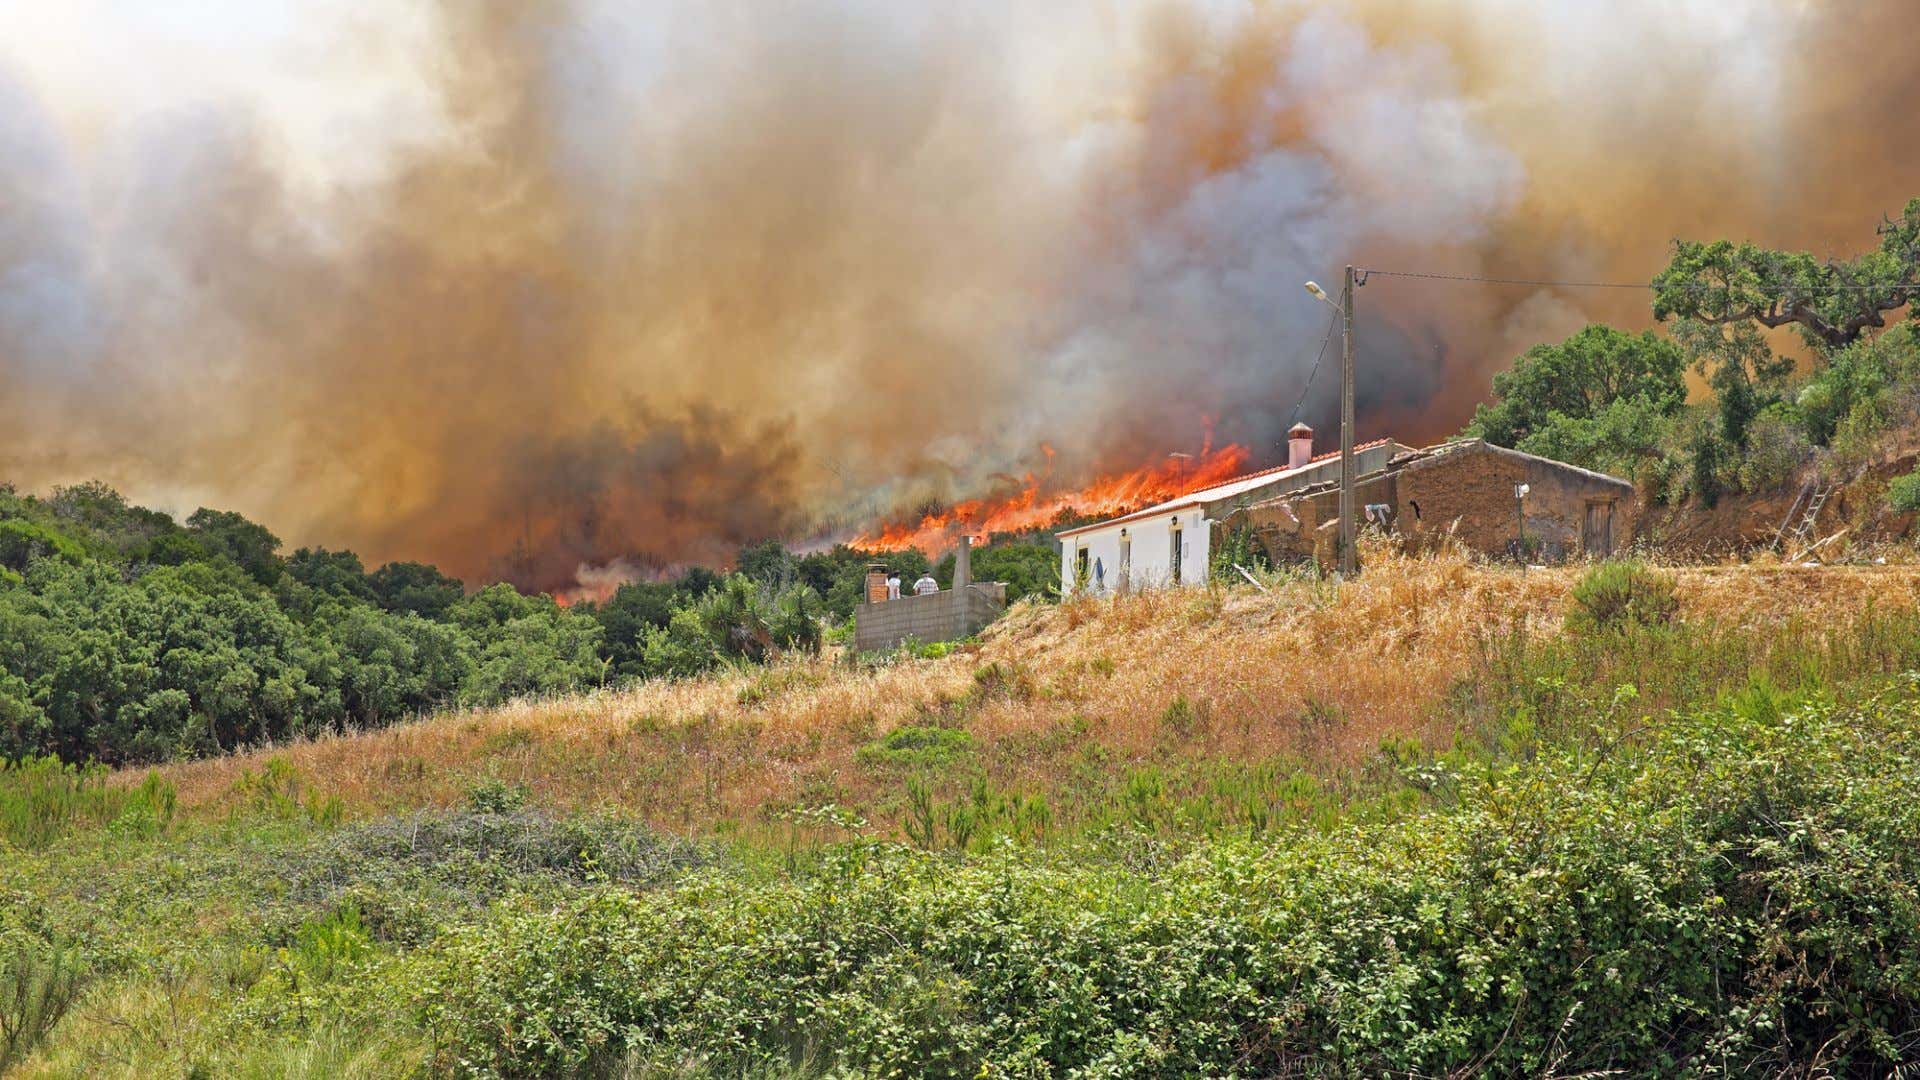 A wildfire threatens a house.